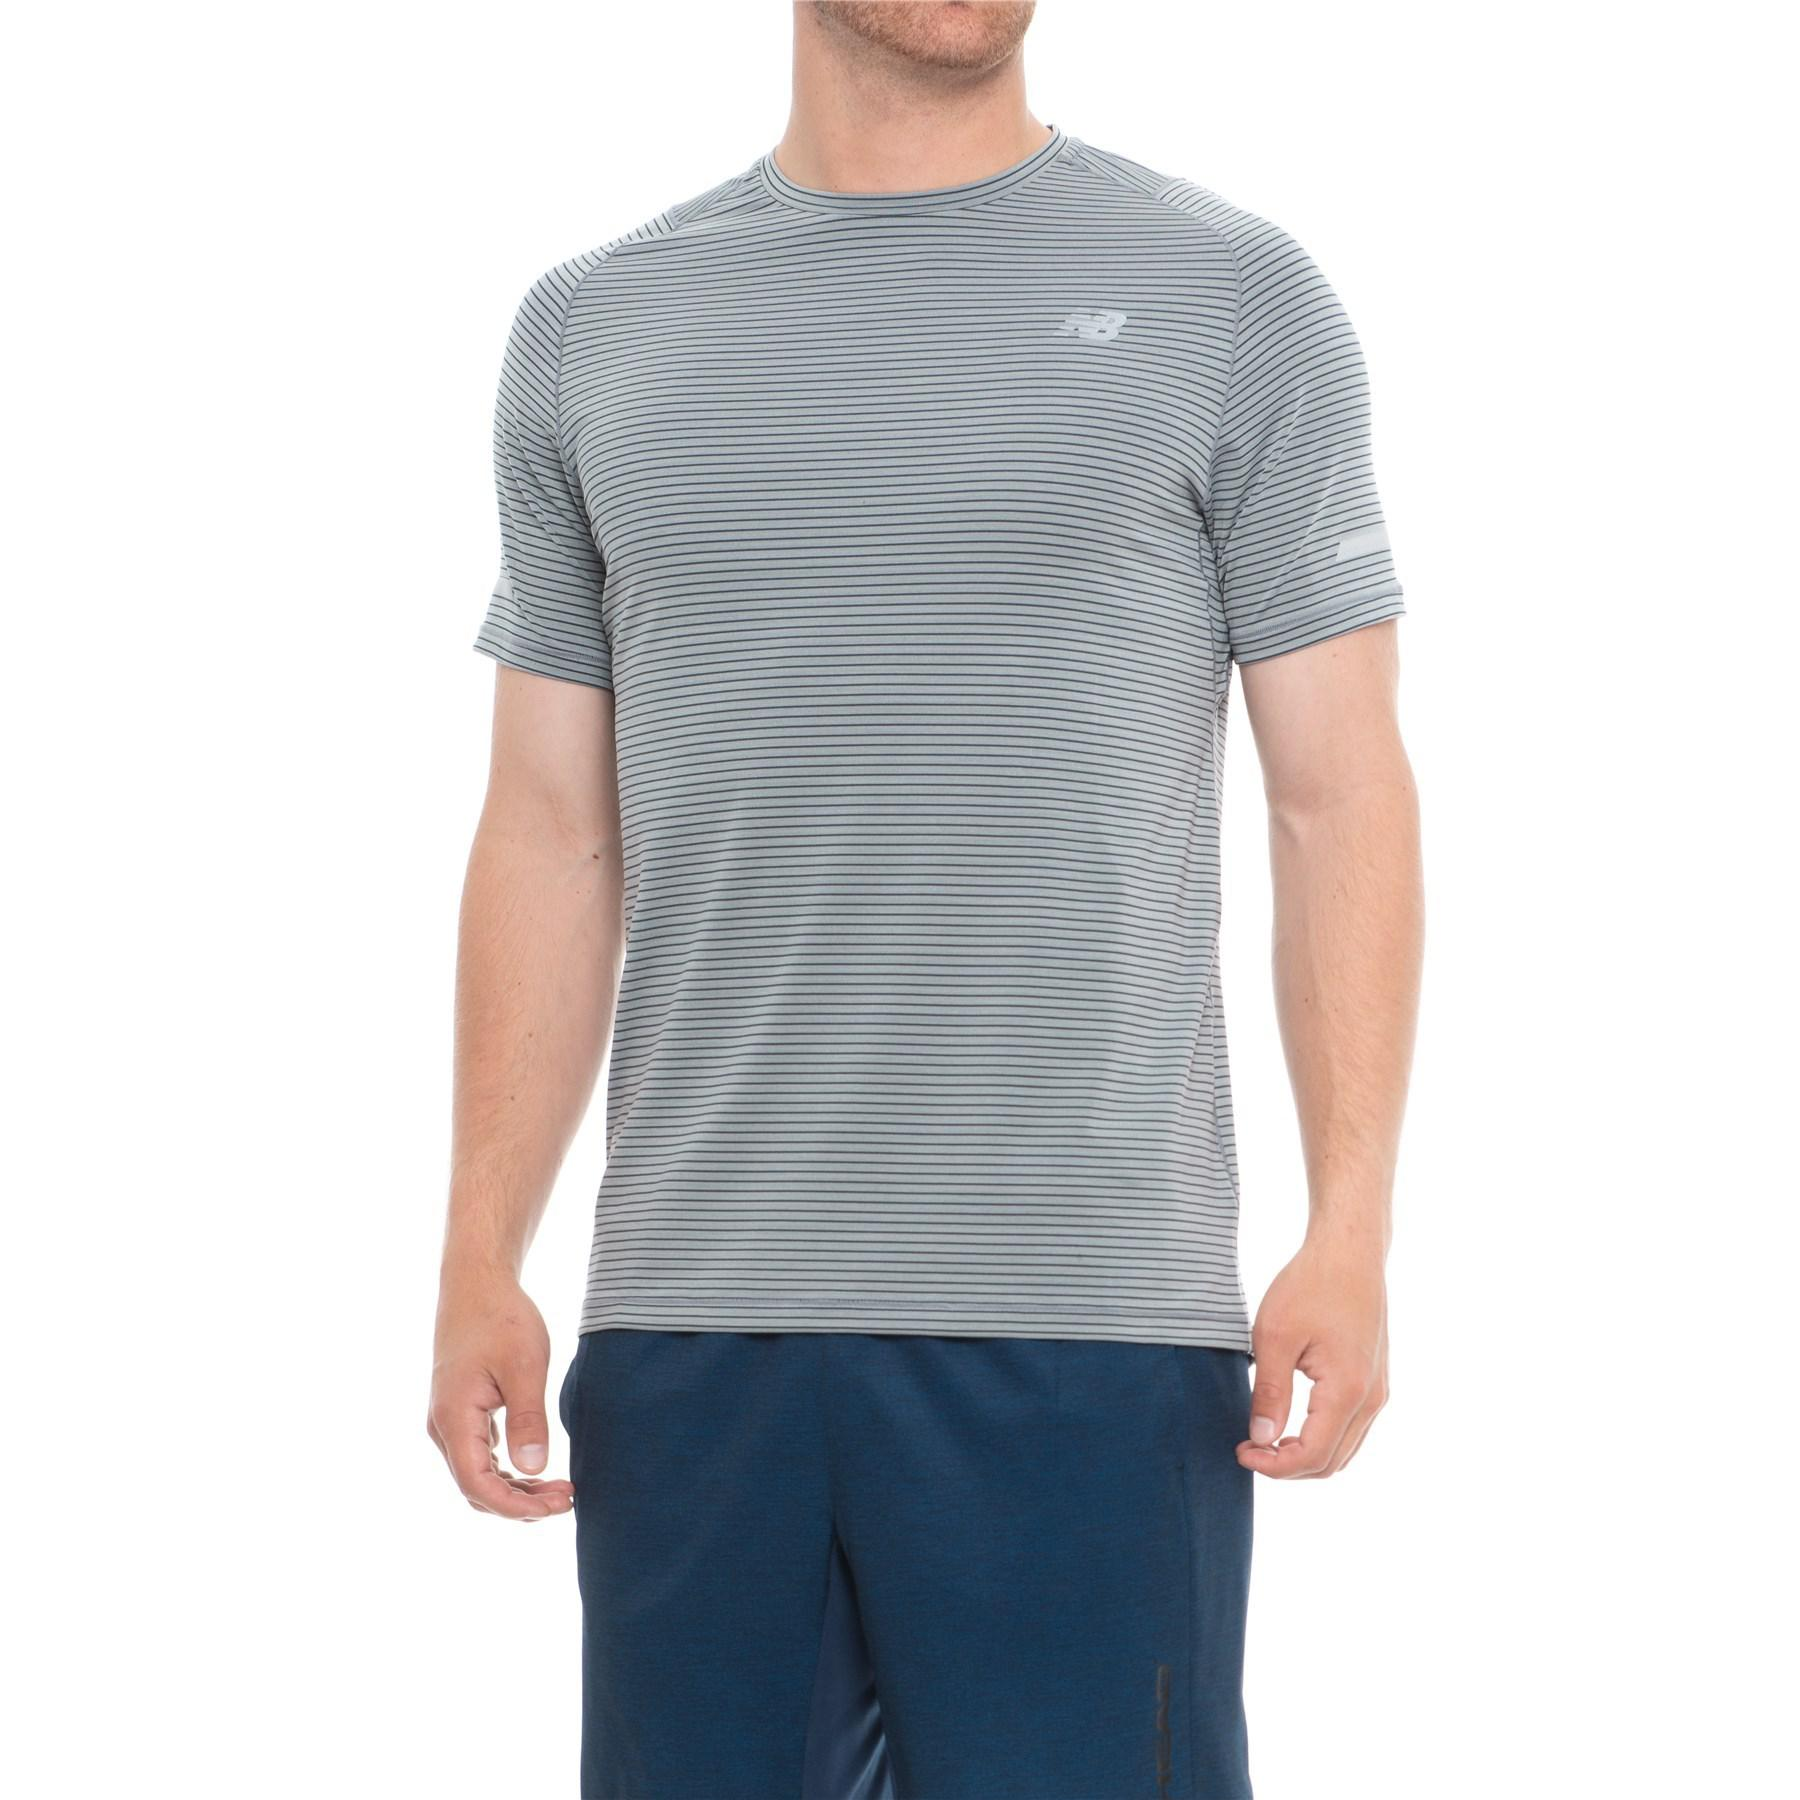 744584a449 New Balance Seasonless T-shirt in Gray for Men - Lyst